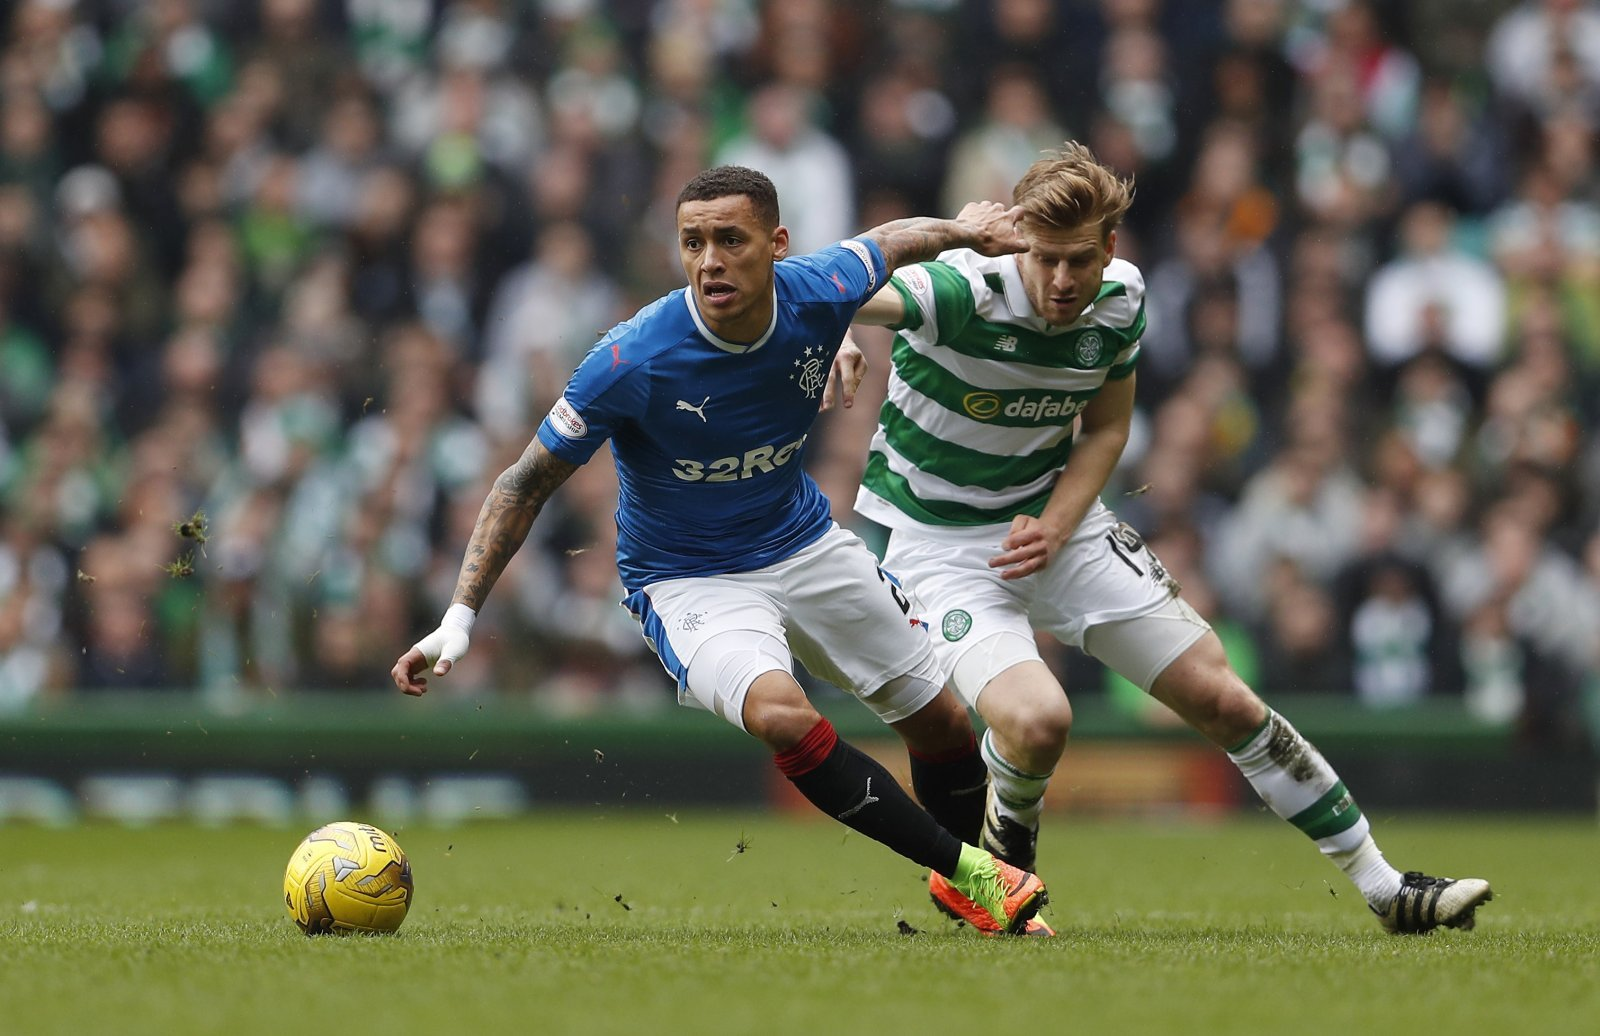 Rangers fans on Twitter loving life with Tavernier at the top of his game